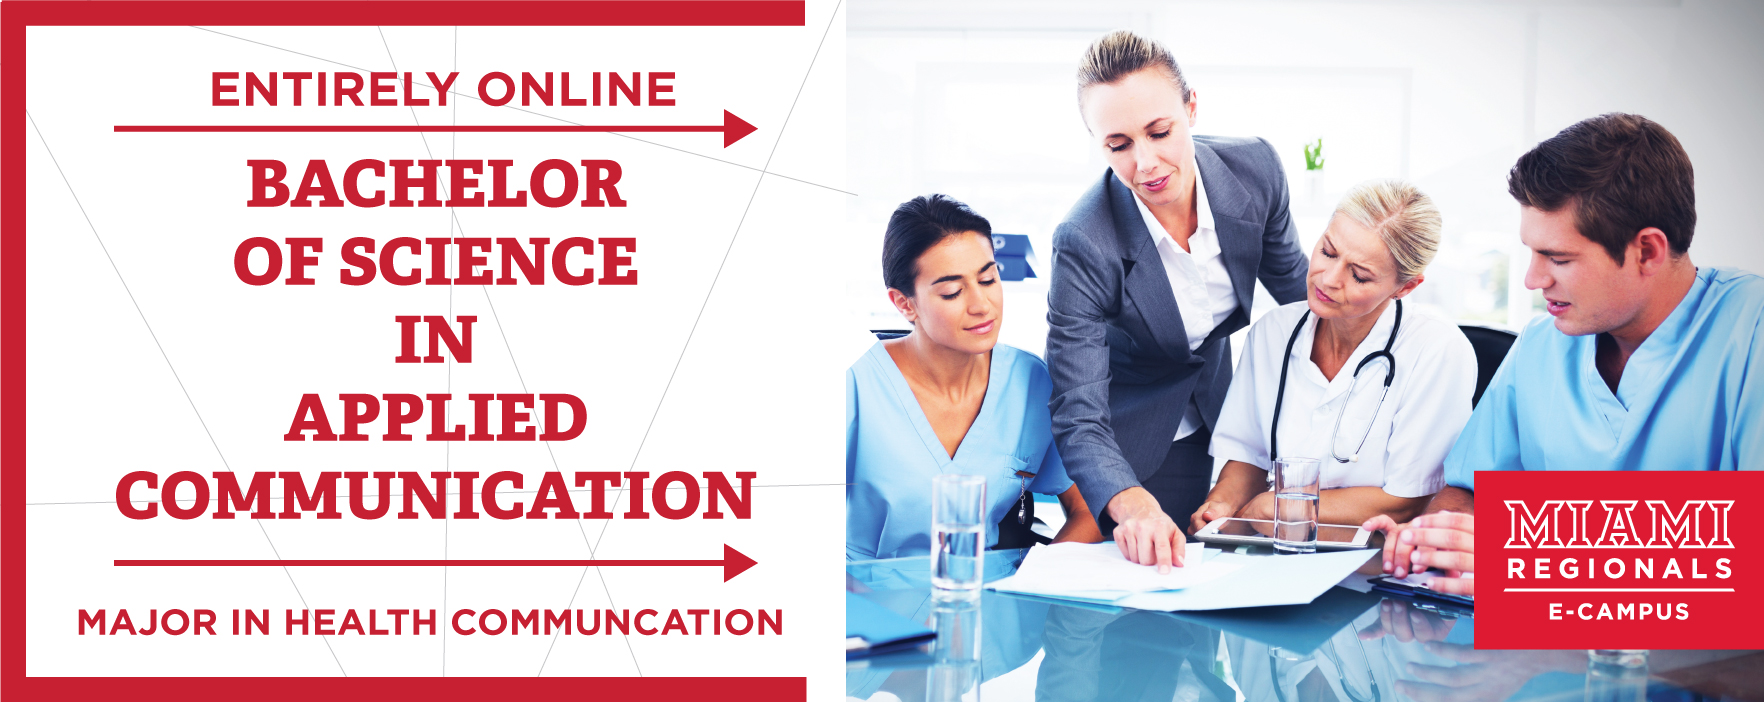 Entirely Online. Bachelor of Science in Applied Communication.  Major is Health Communication.